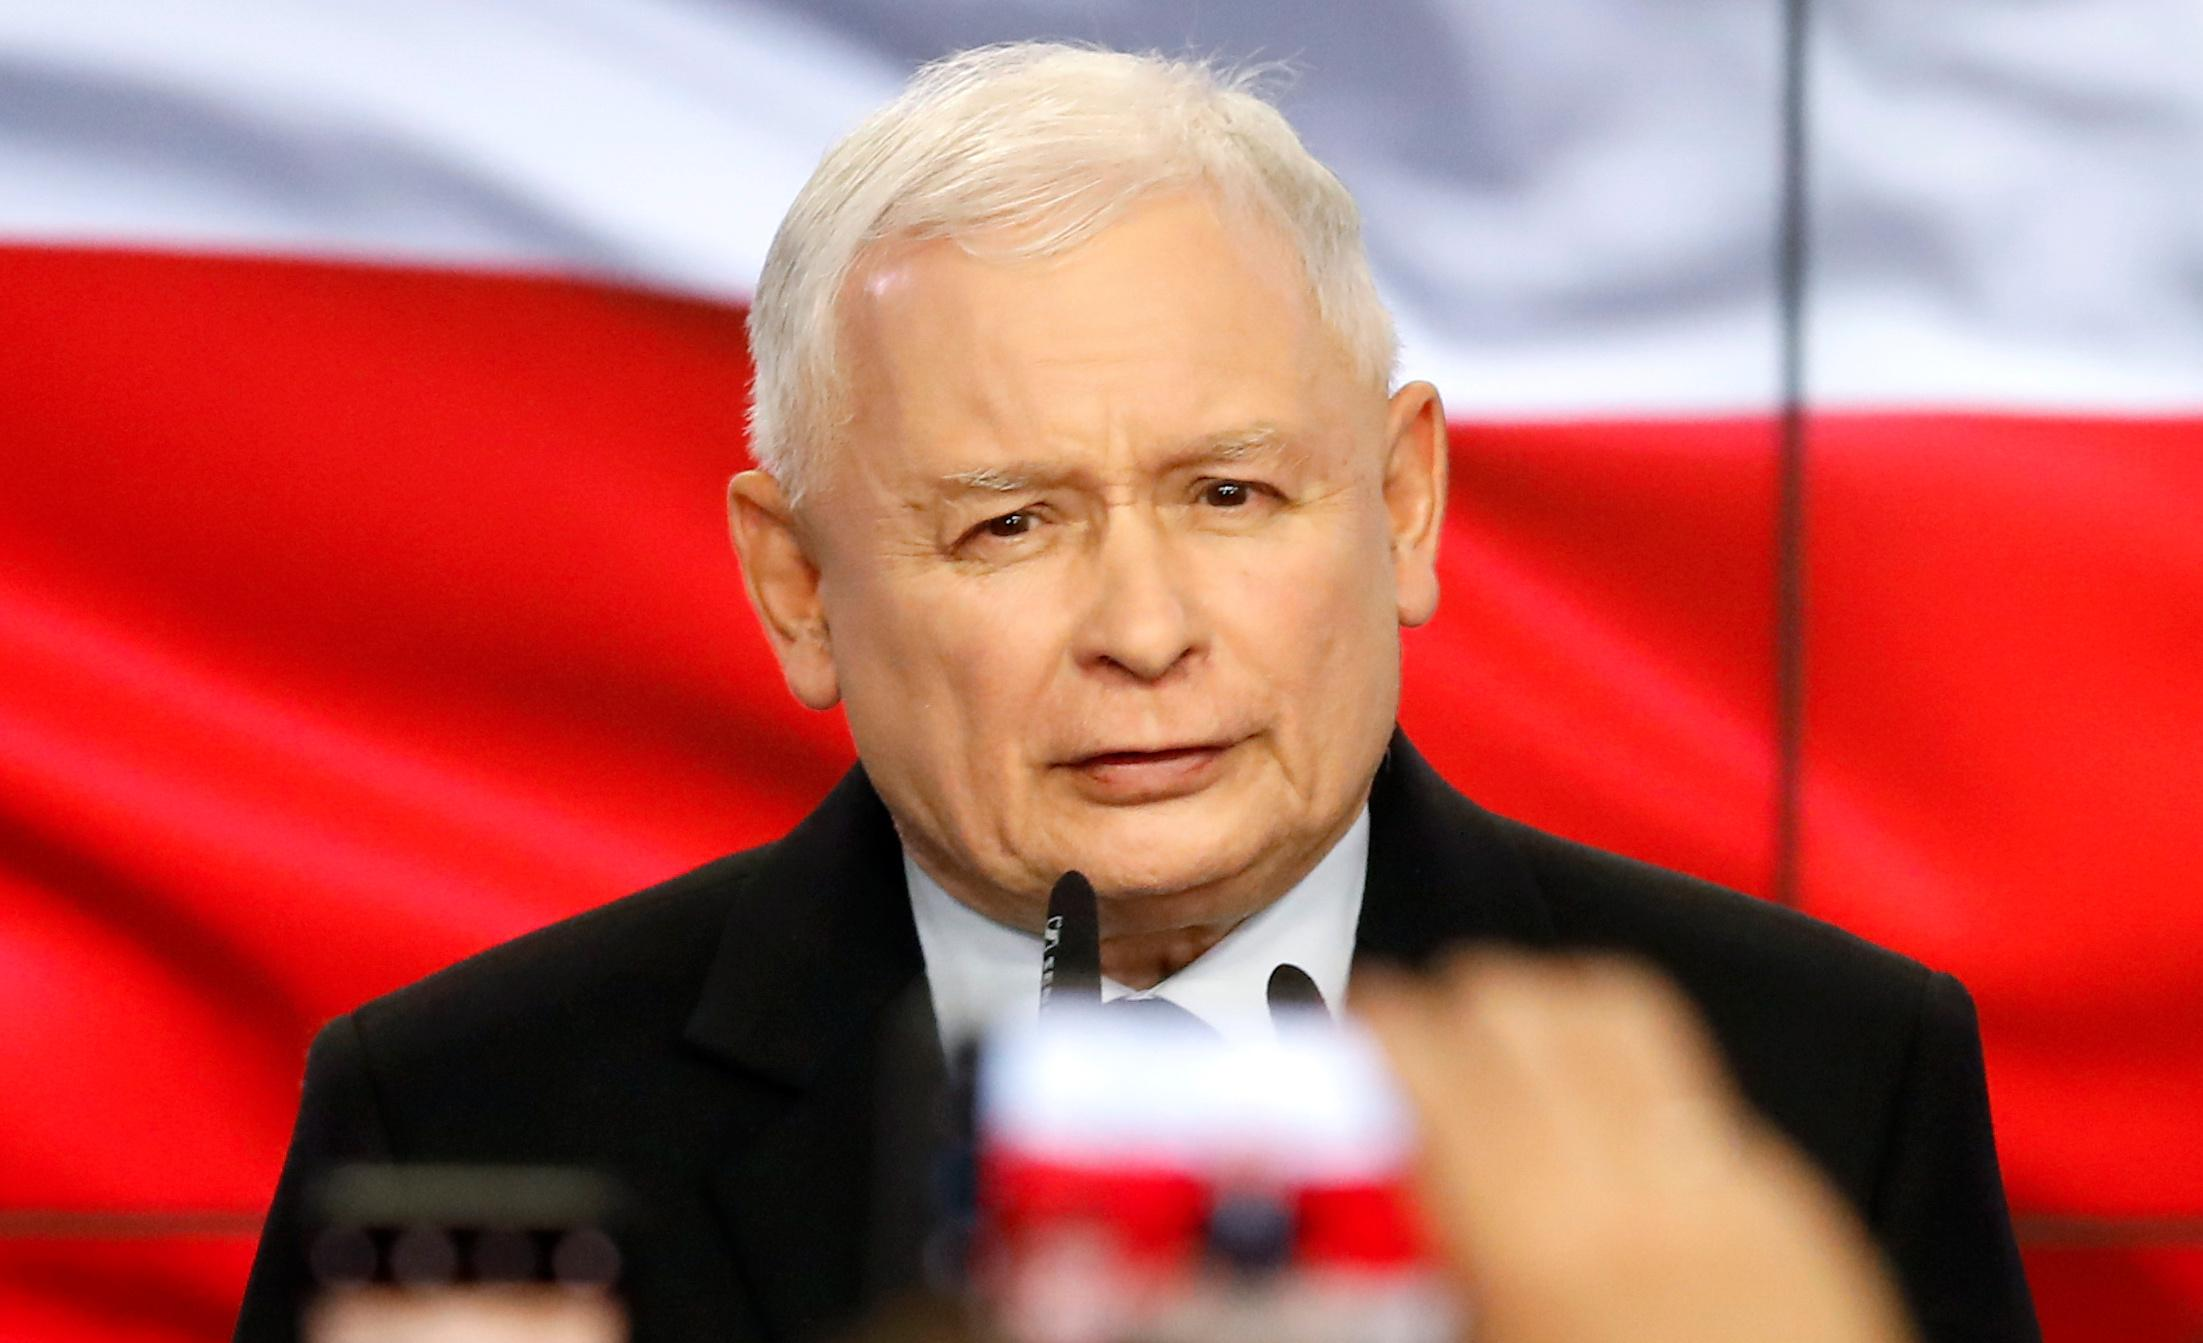 Poland's ruling party leader Kaczynski declares victory